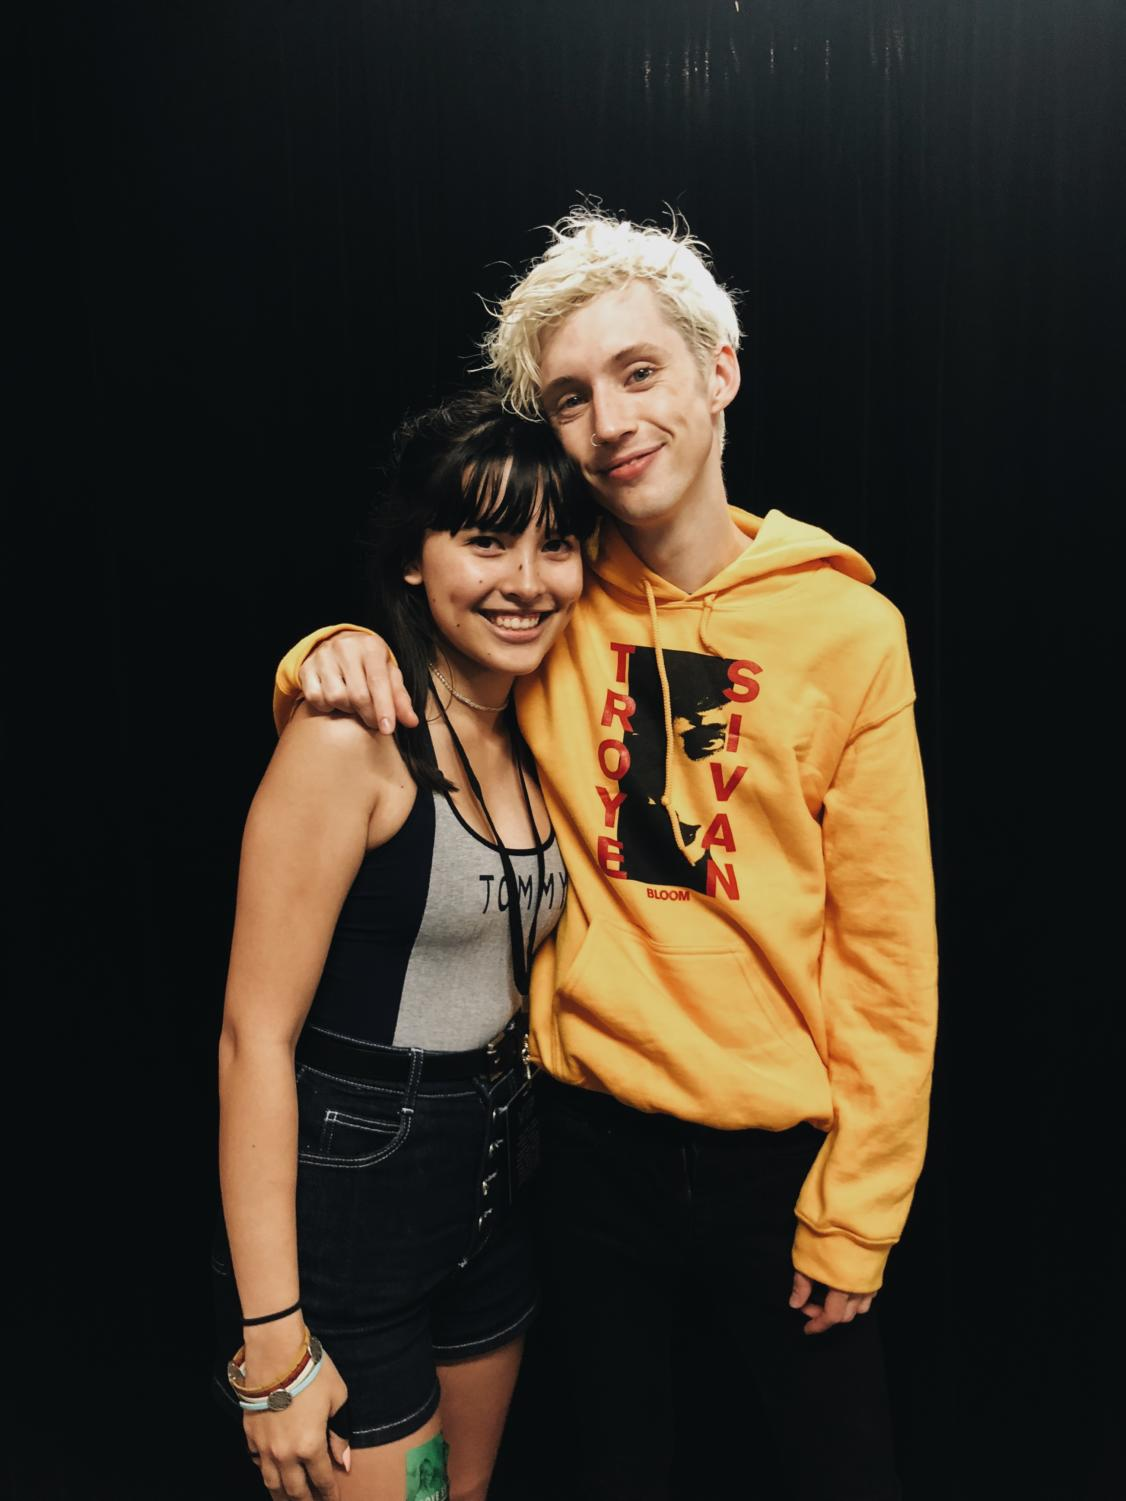 Kaliegh poses for a picture with Troye Sivan.